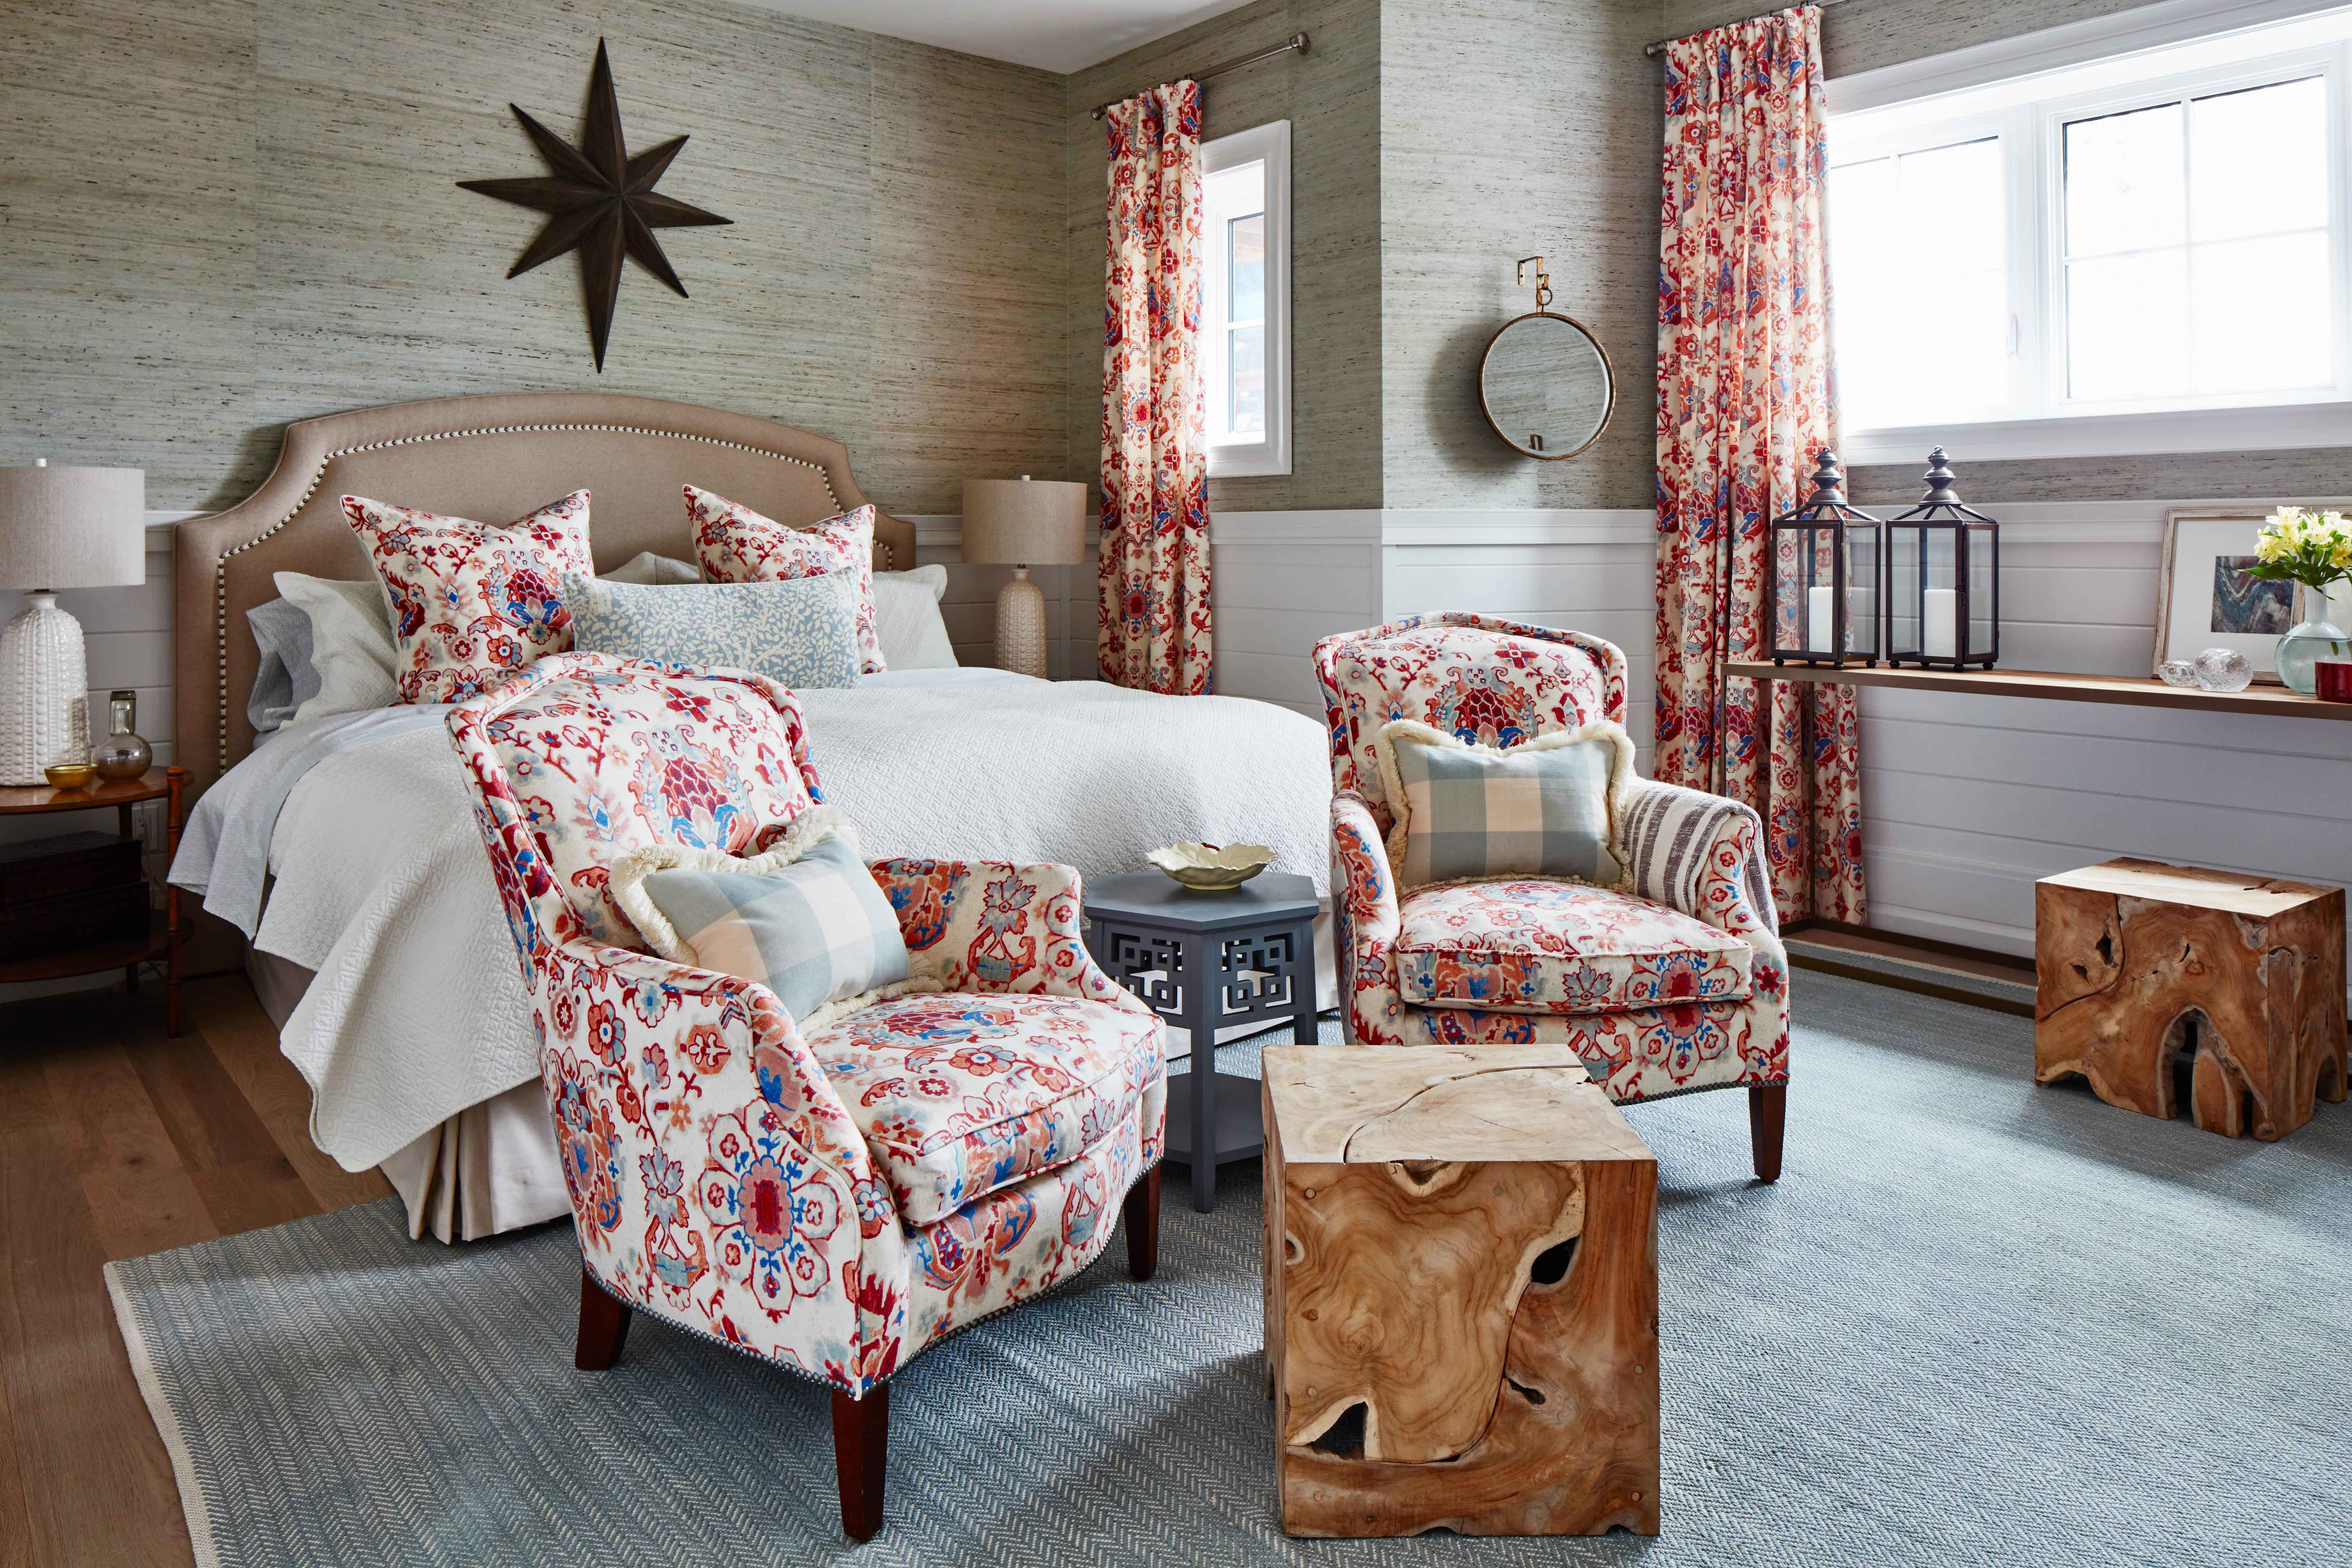 The Show Is Remarkable At Breaking Down Every Element That Goes Into The  Home As Well As Providing Designer Tips.